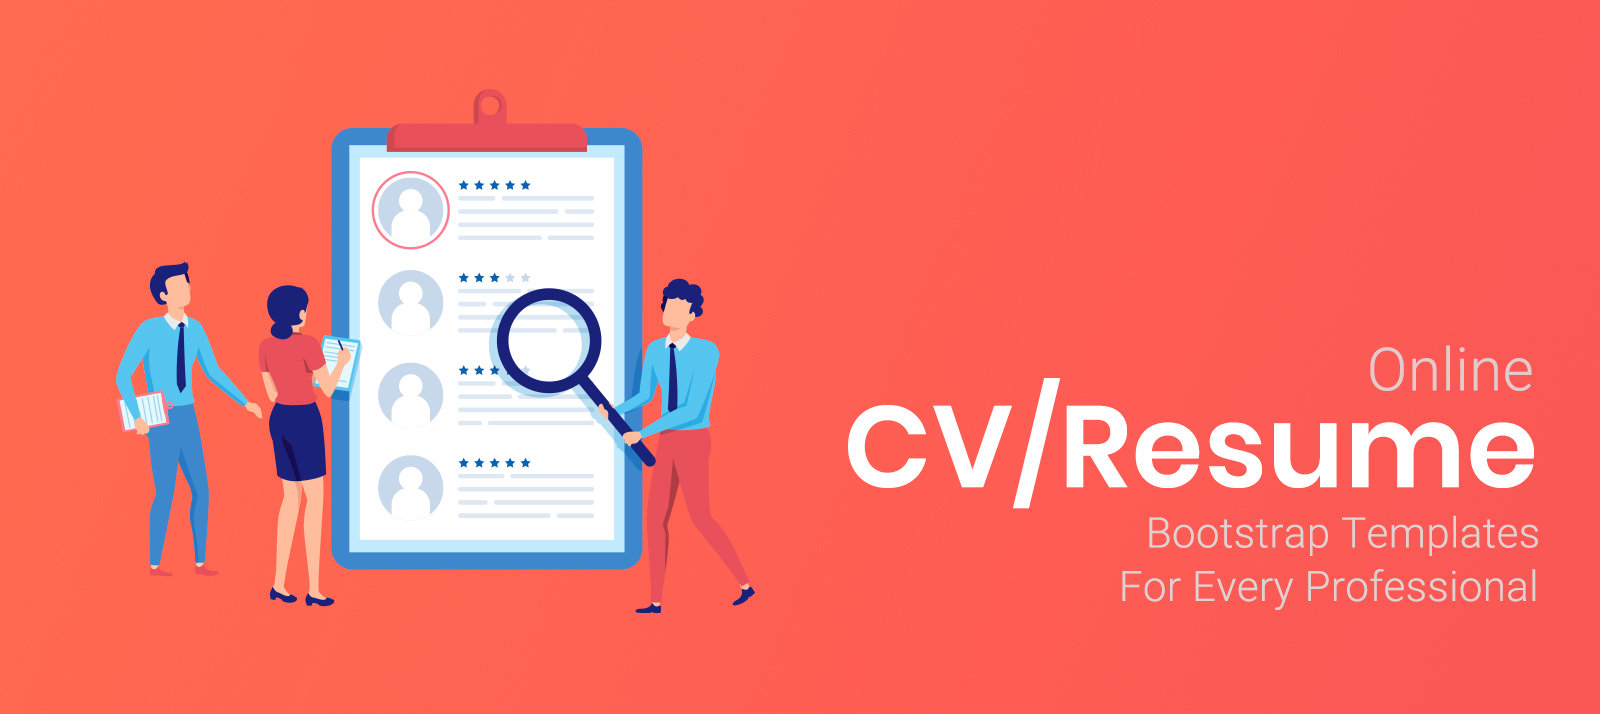 Premium Online CV/Resume Bootstrap Templates For Every Professional